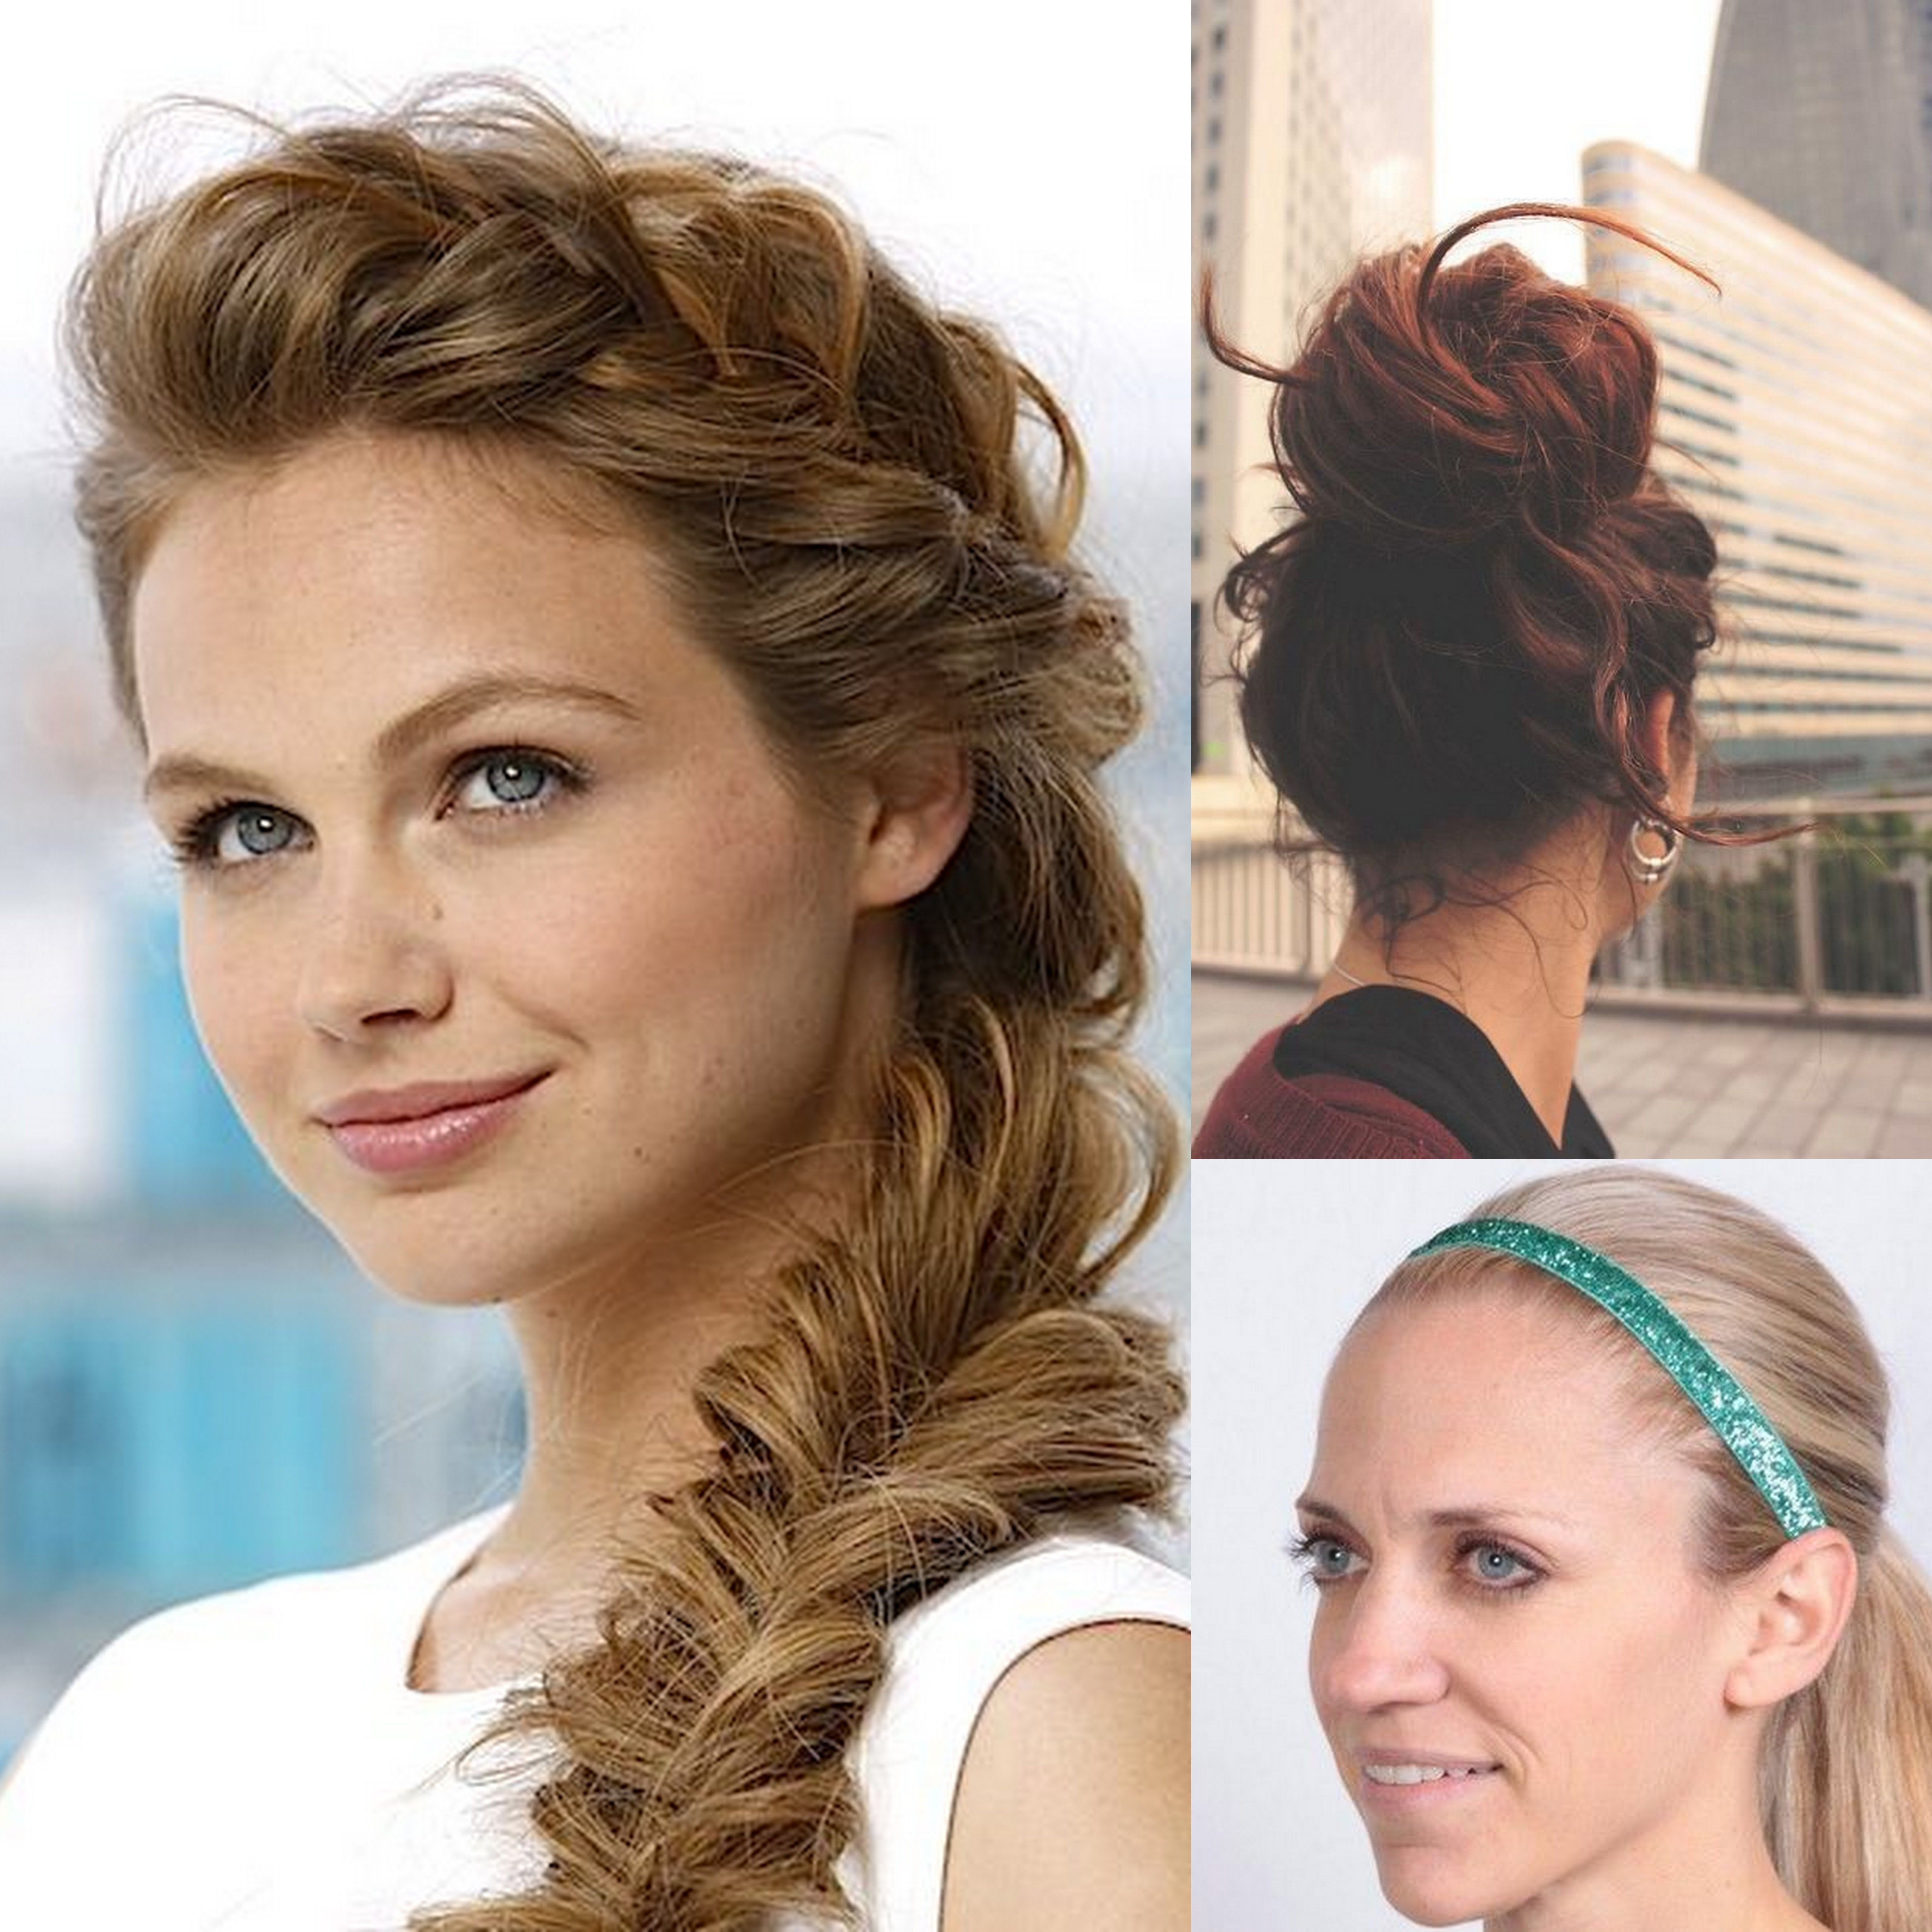 Hairstyles For Long Hair Races Hairstyles Trends Long Hair Styles Hair Styles Wedding Guest Hairstyles